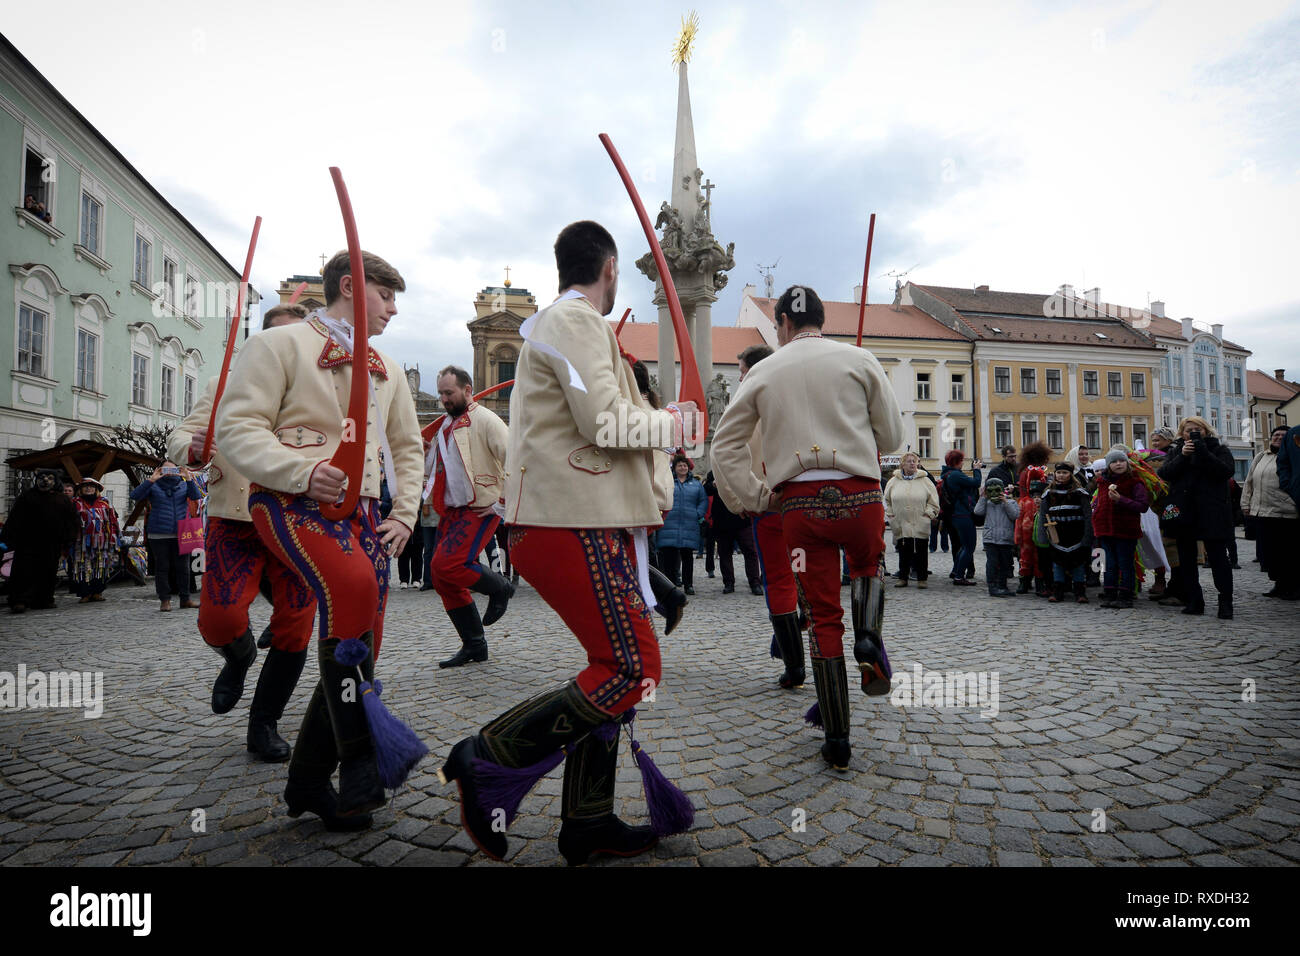 Mikulov, Czech Republic  9th Mar 2019  People dressed in a